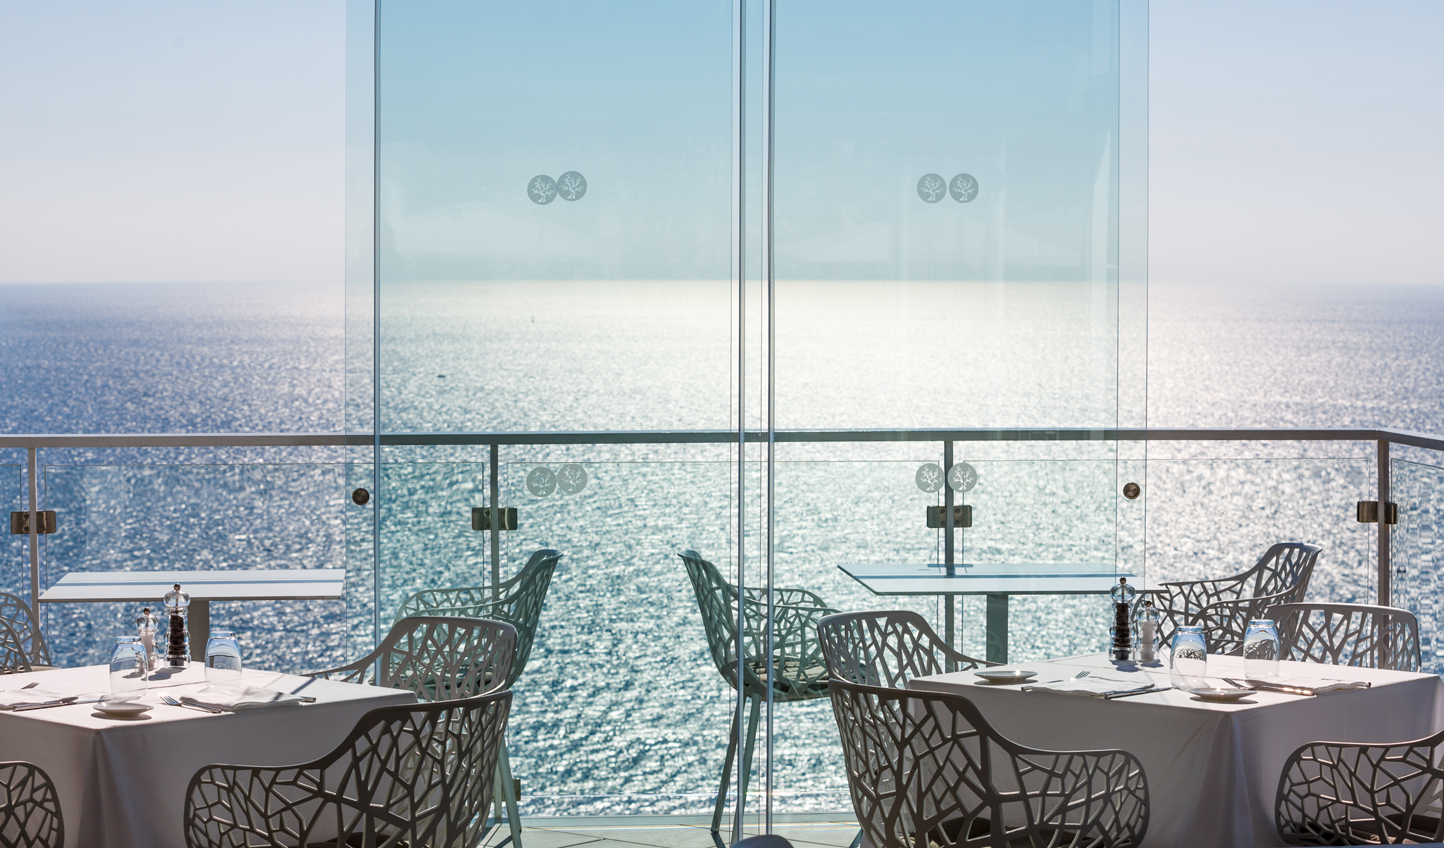 The views don't get any better than at Terrazza Fiorella